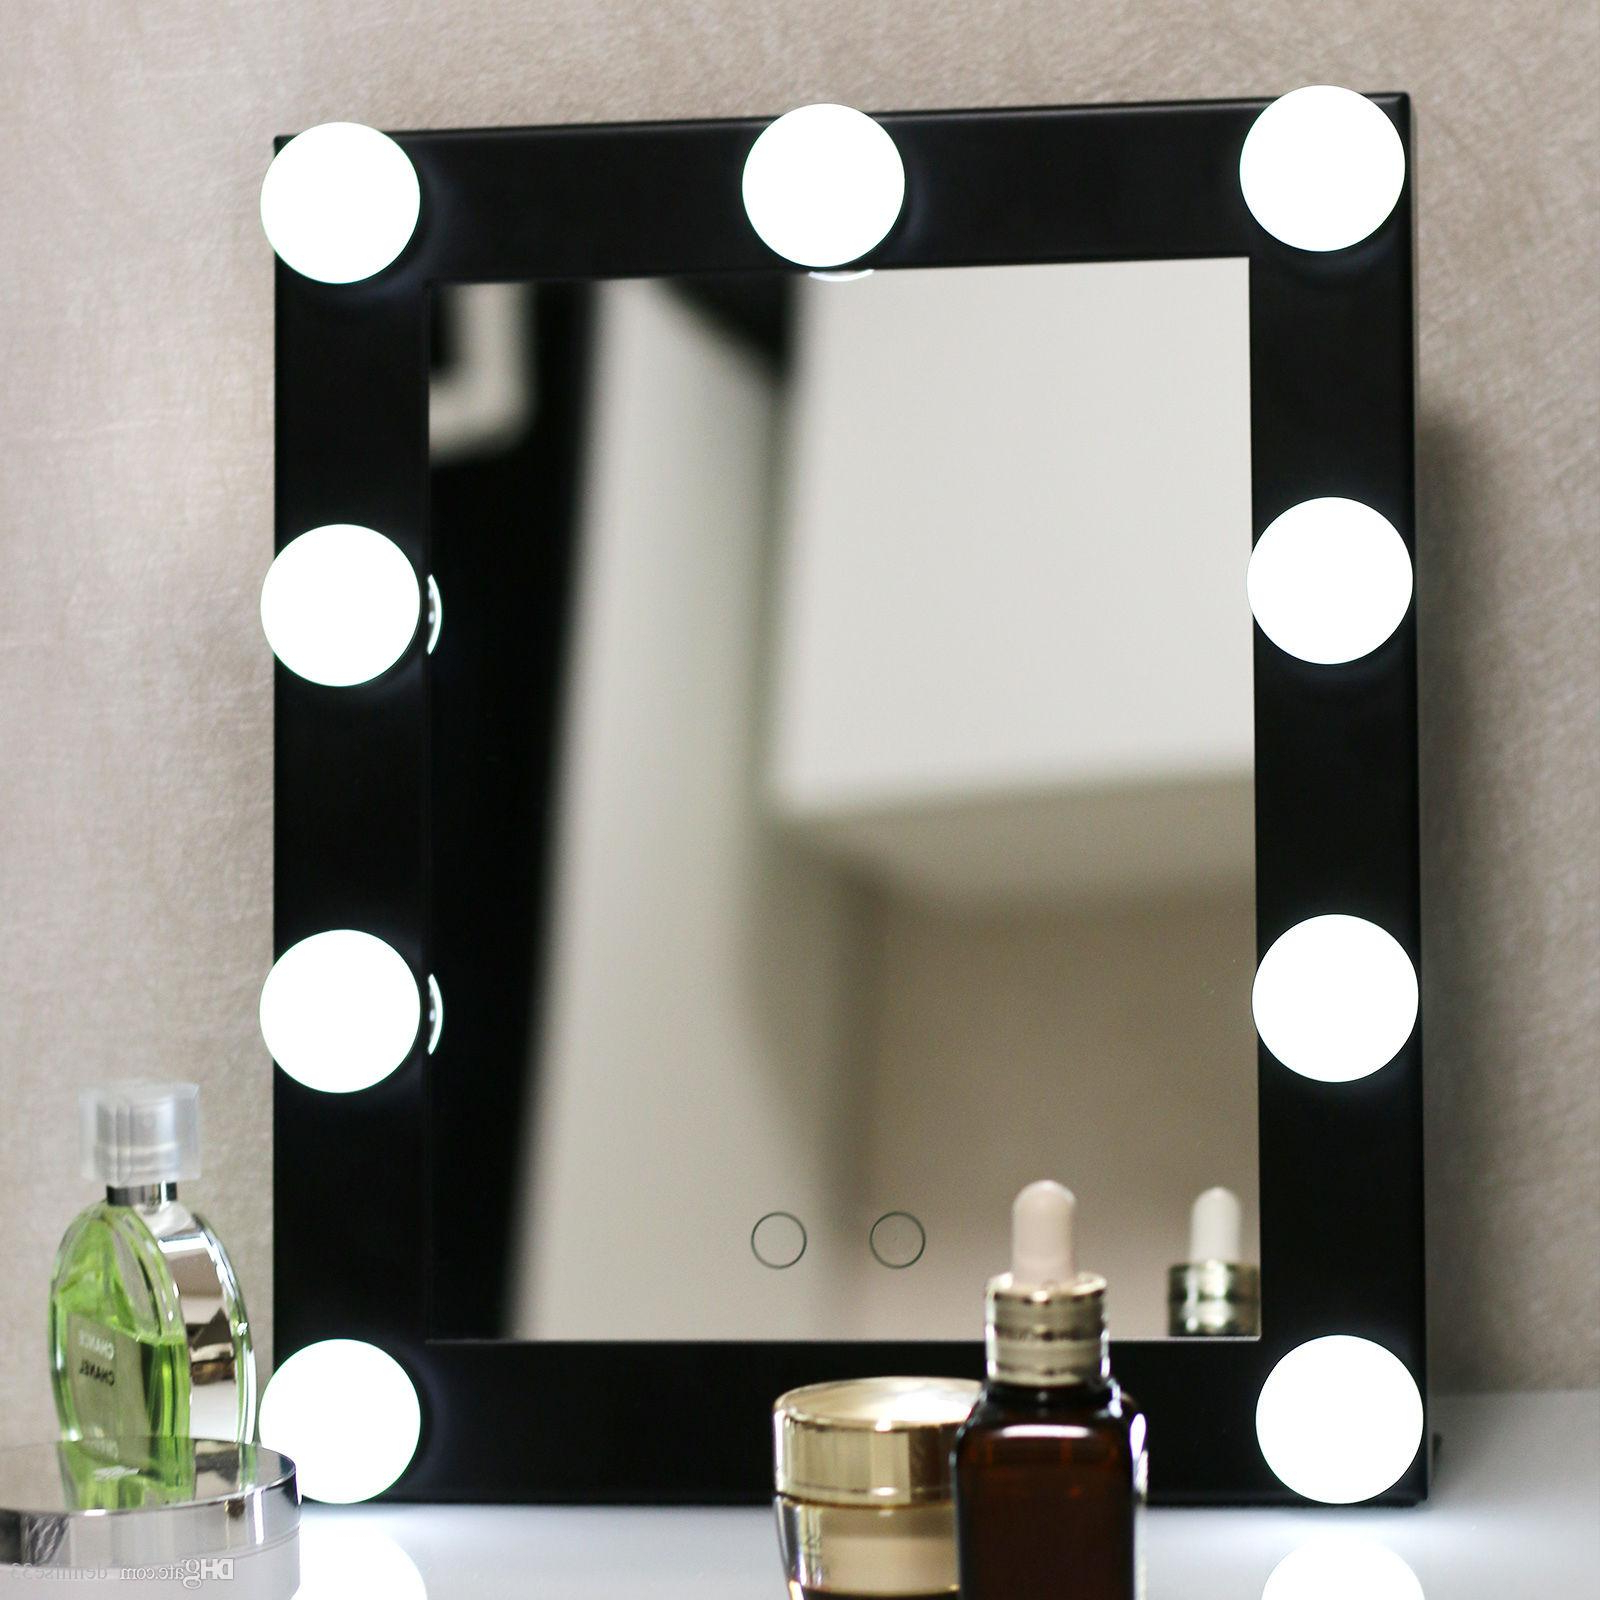 Free Shipping Hollywood Lighted Aluminum Table Desktop Wall Mounted  Cosmetic Makeup Artist Salon Vanity Girl Mirror With Lights Bulbs Around With Regard To Fashionable Make Up Wall Mirrors (Gallery 17 of 20)